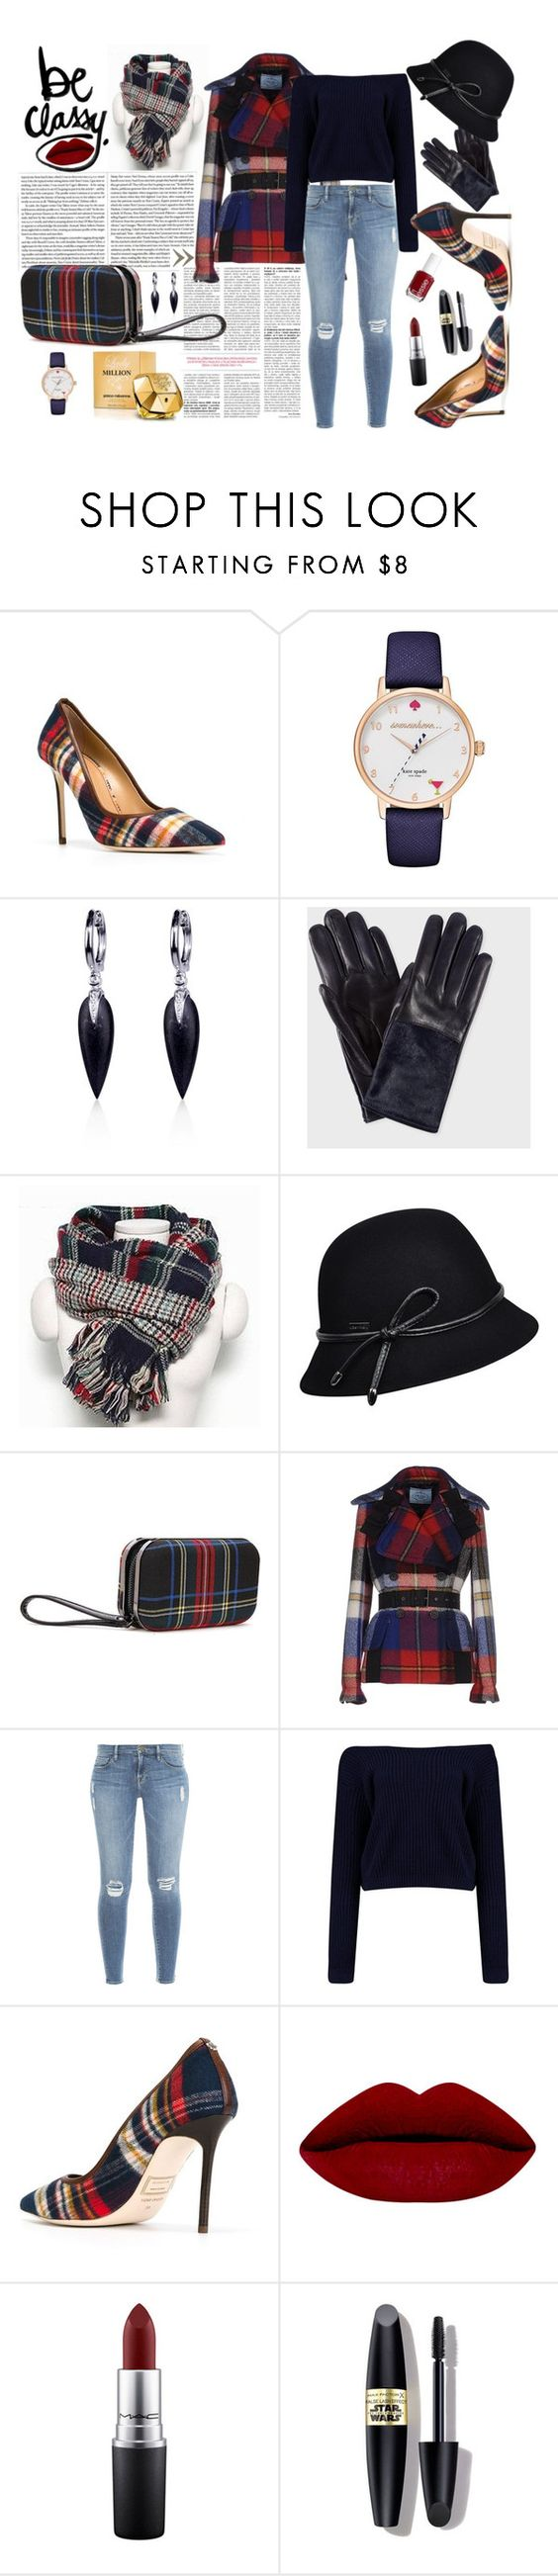 """""""Be classy"""" by natasa-topalovic ❤ liked on Polyvore featuring мода, Dsquared2, Kate Spade, Belk & Co., Paul Smith, Betmar, Prada, Frame Denim, MAC Cosmetics и Max Factor"""